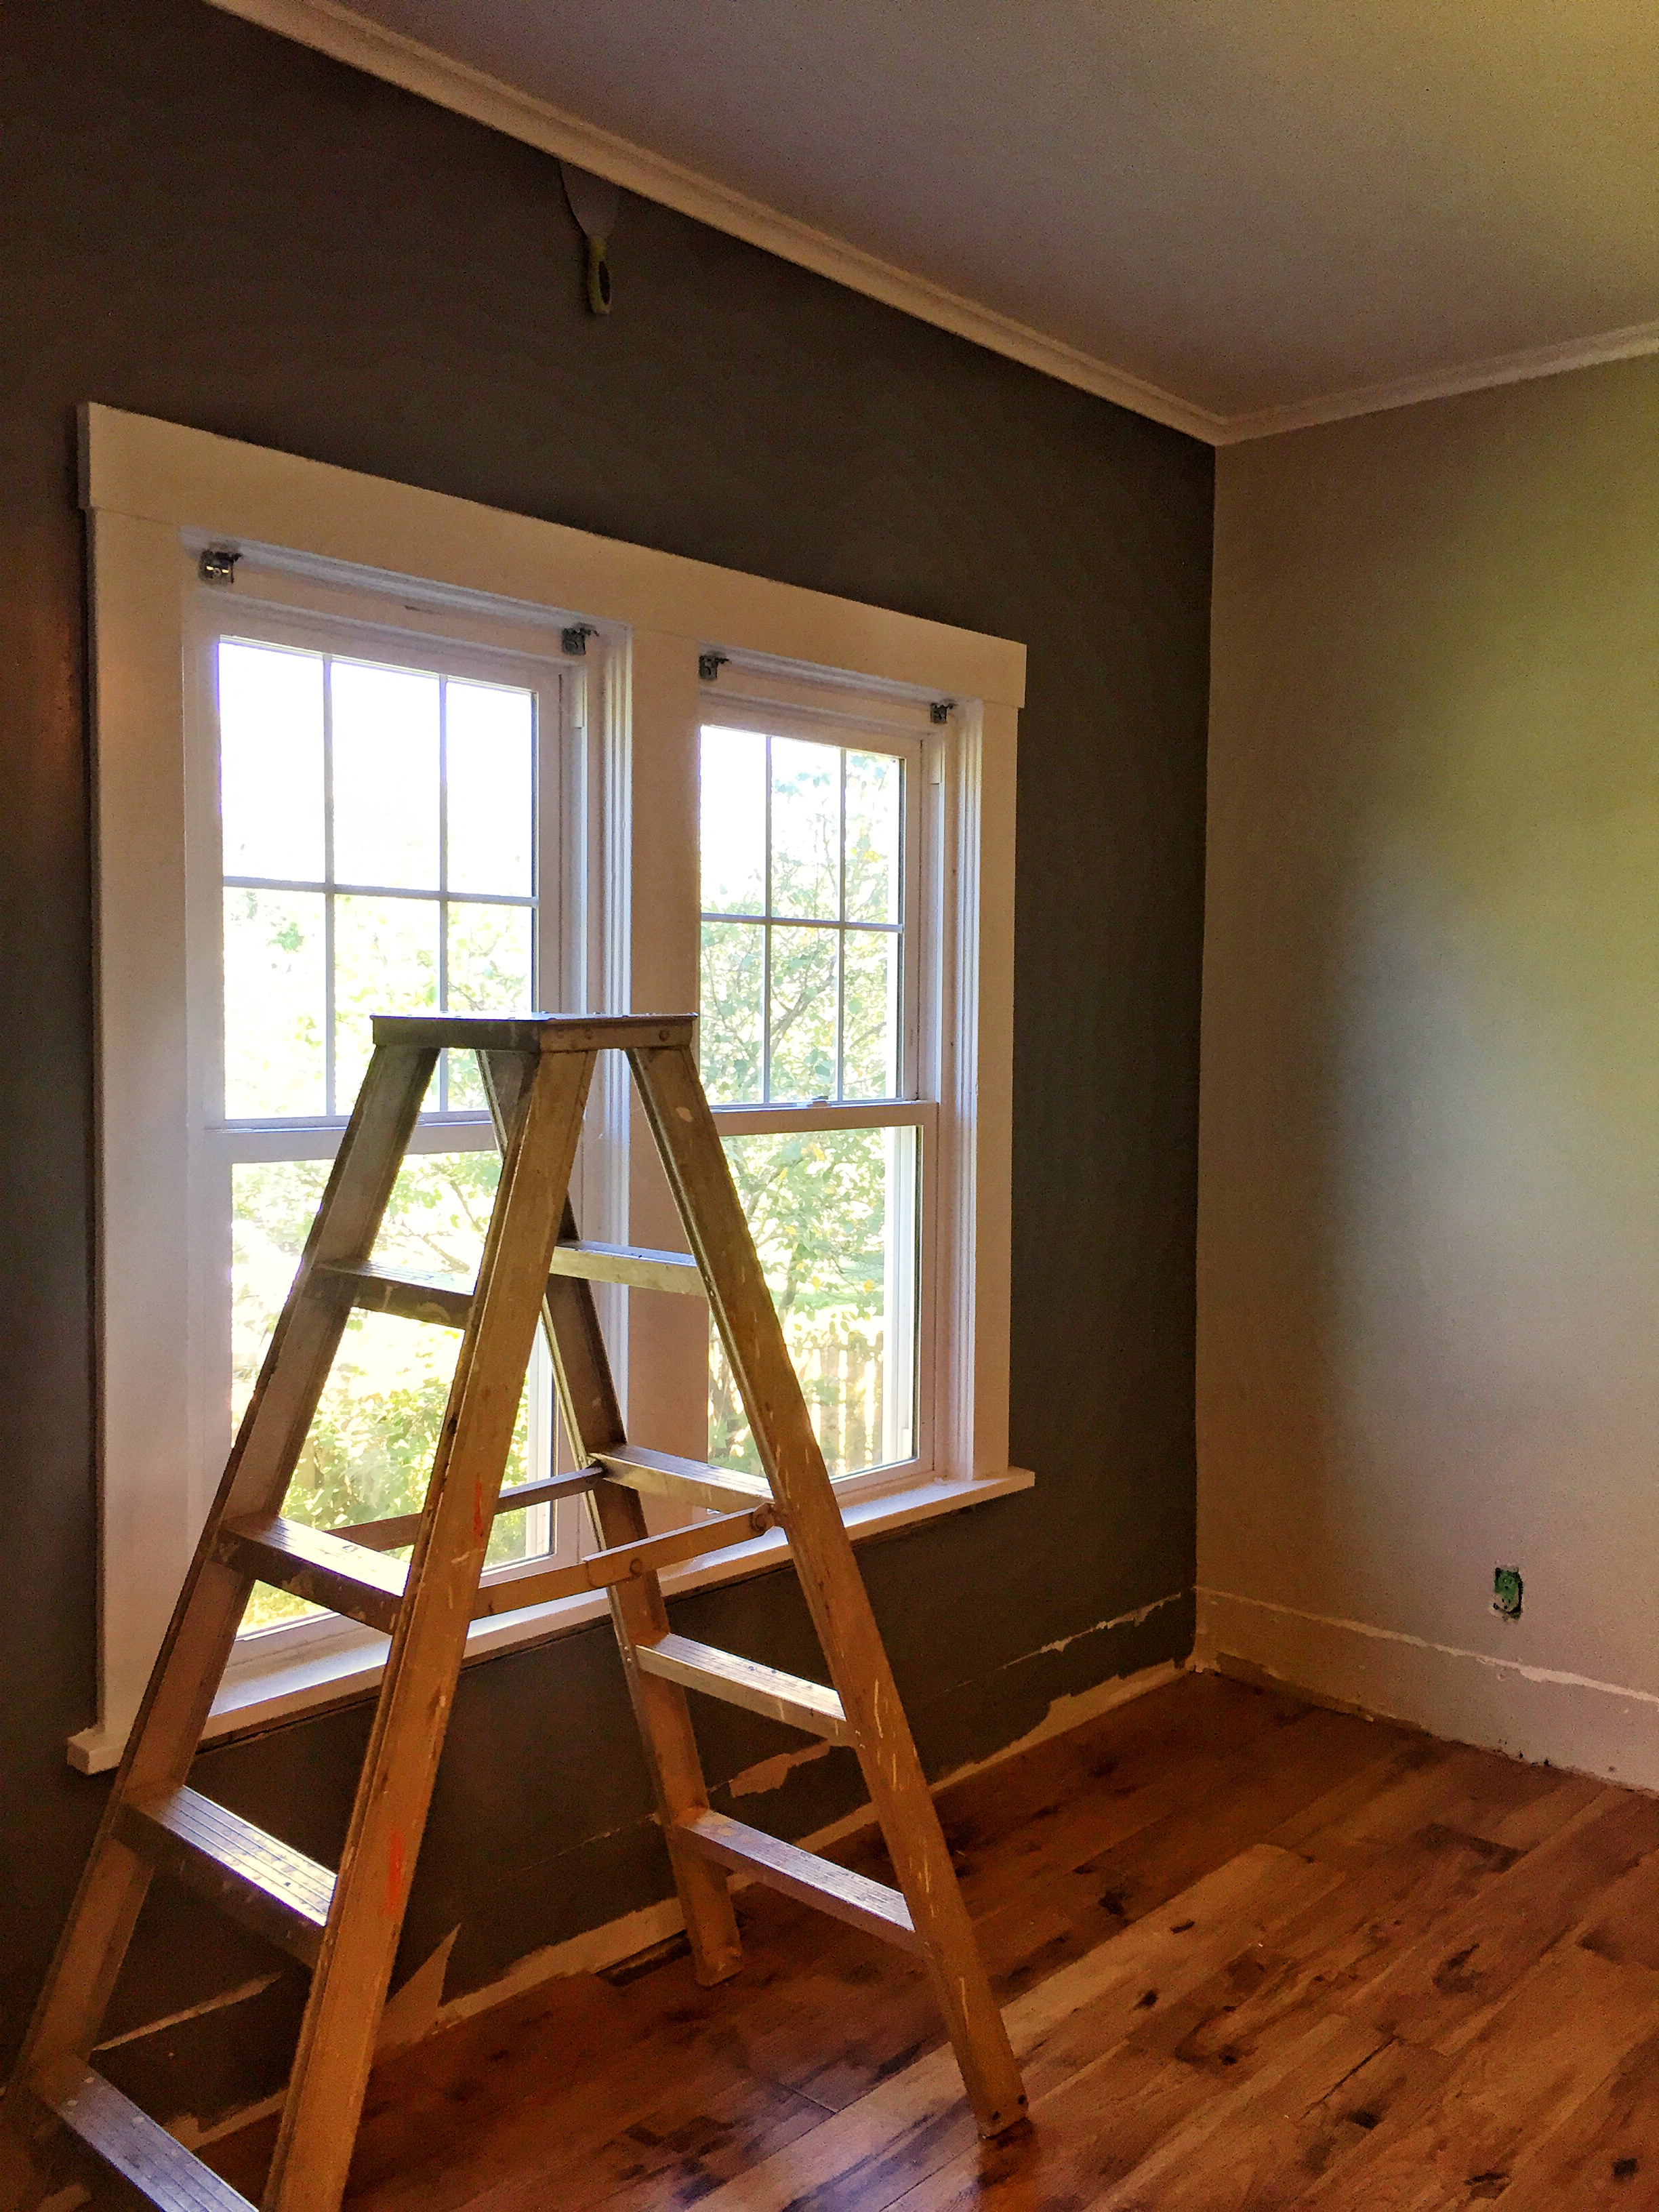 Getting started on the dining room project - removing the old baseboards. (Not sure why a random scraper is stuck in the crown molding. Most likely, I started working up there then got distracted.)